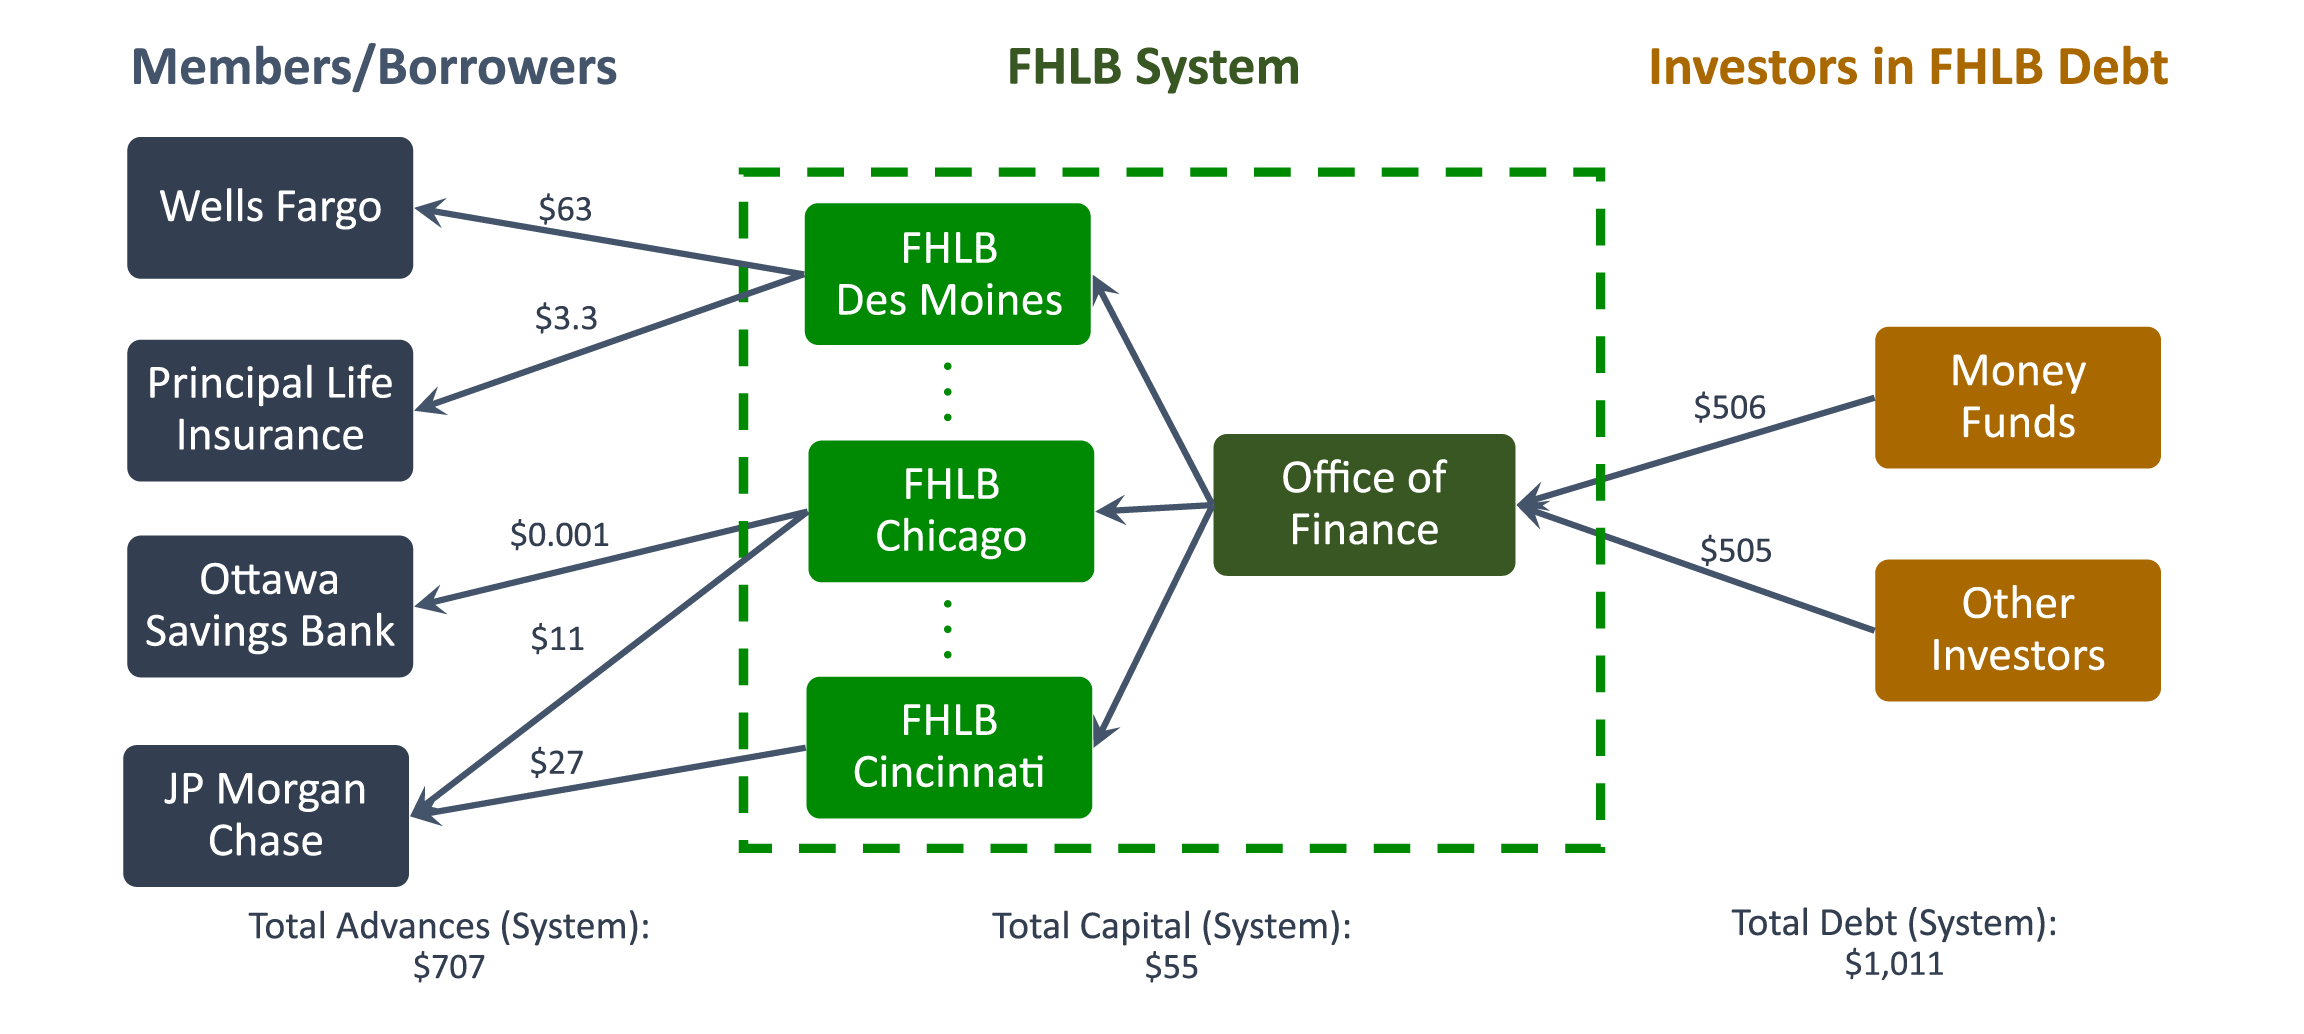 Figure 2. Schematic map of the flow of funding in the FHLB system. See accessible link for data description.